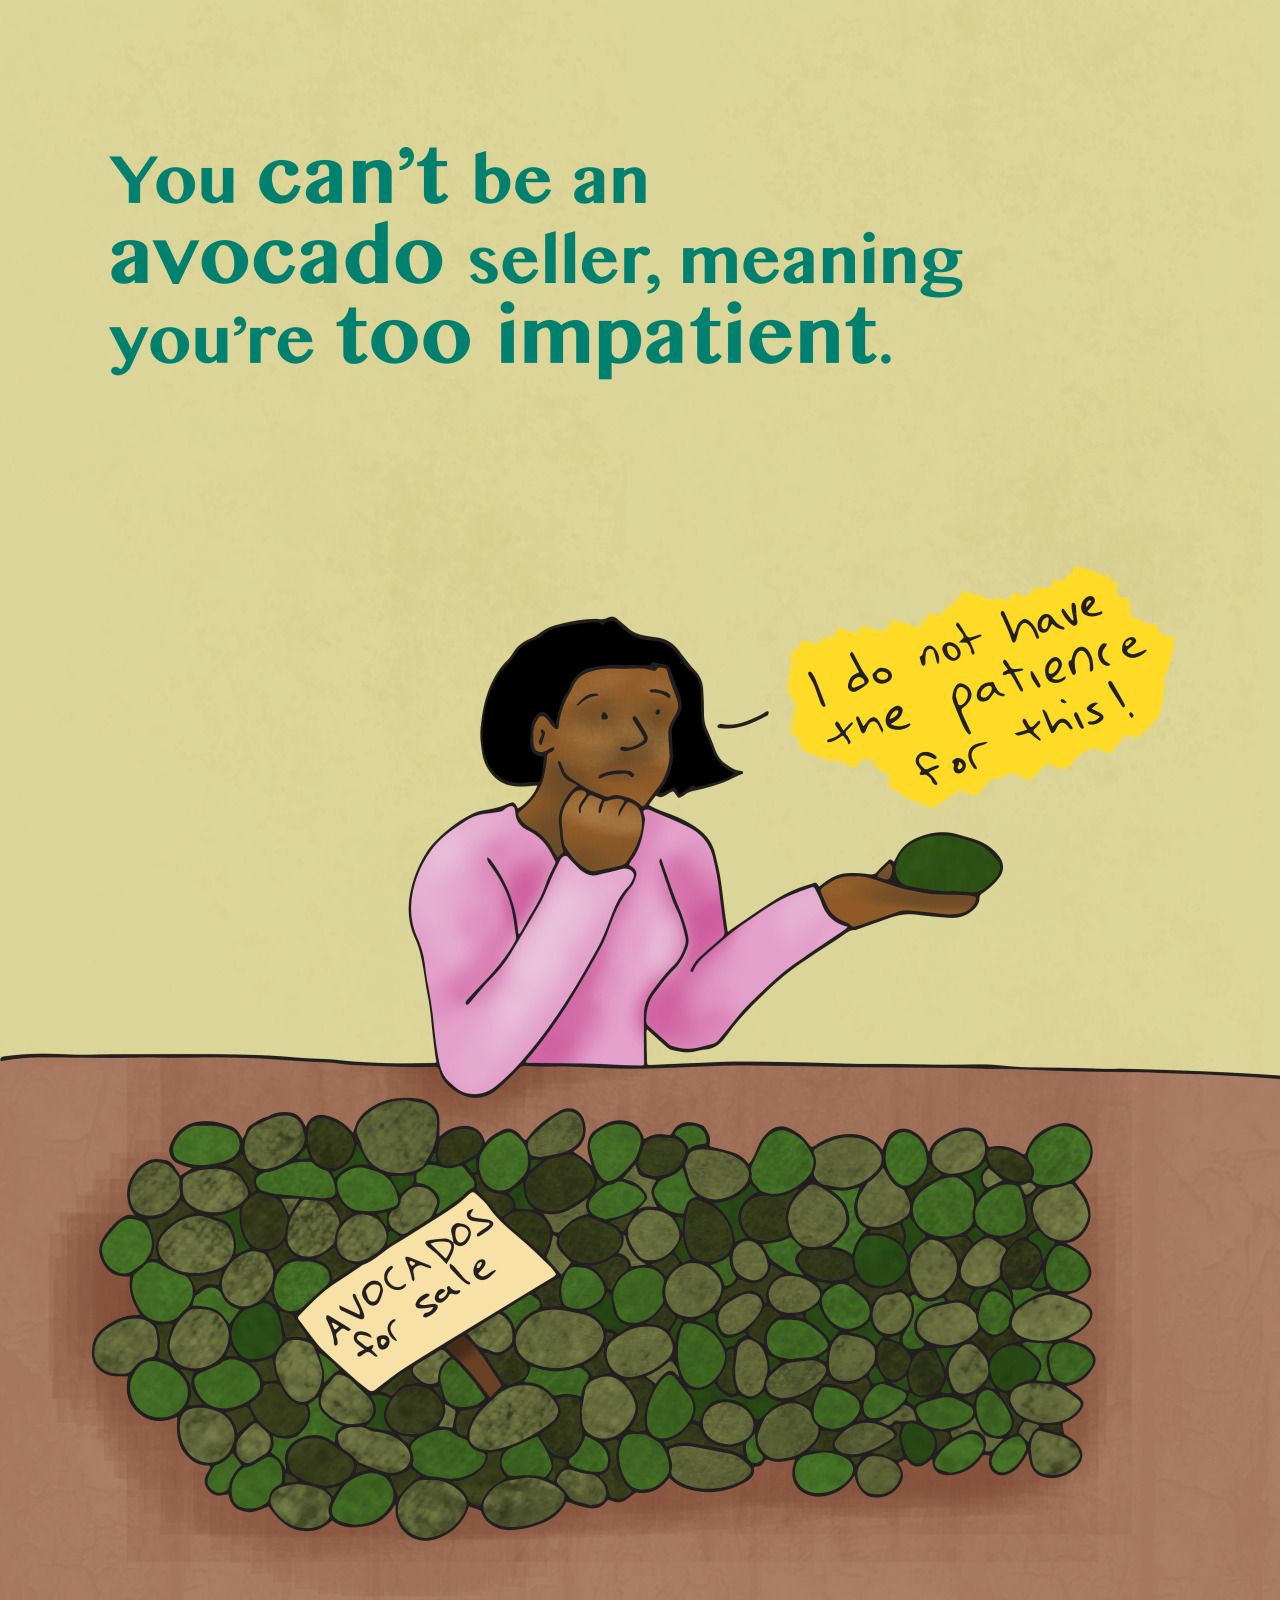 No sirve para vender aguacates  Translation: You can't be an